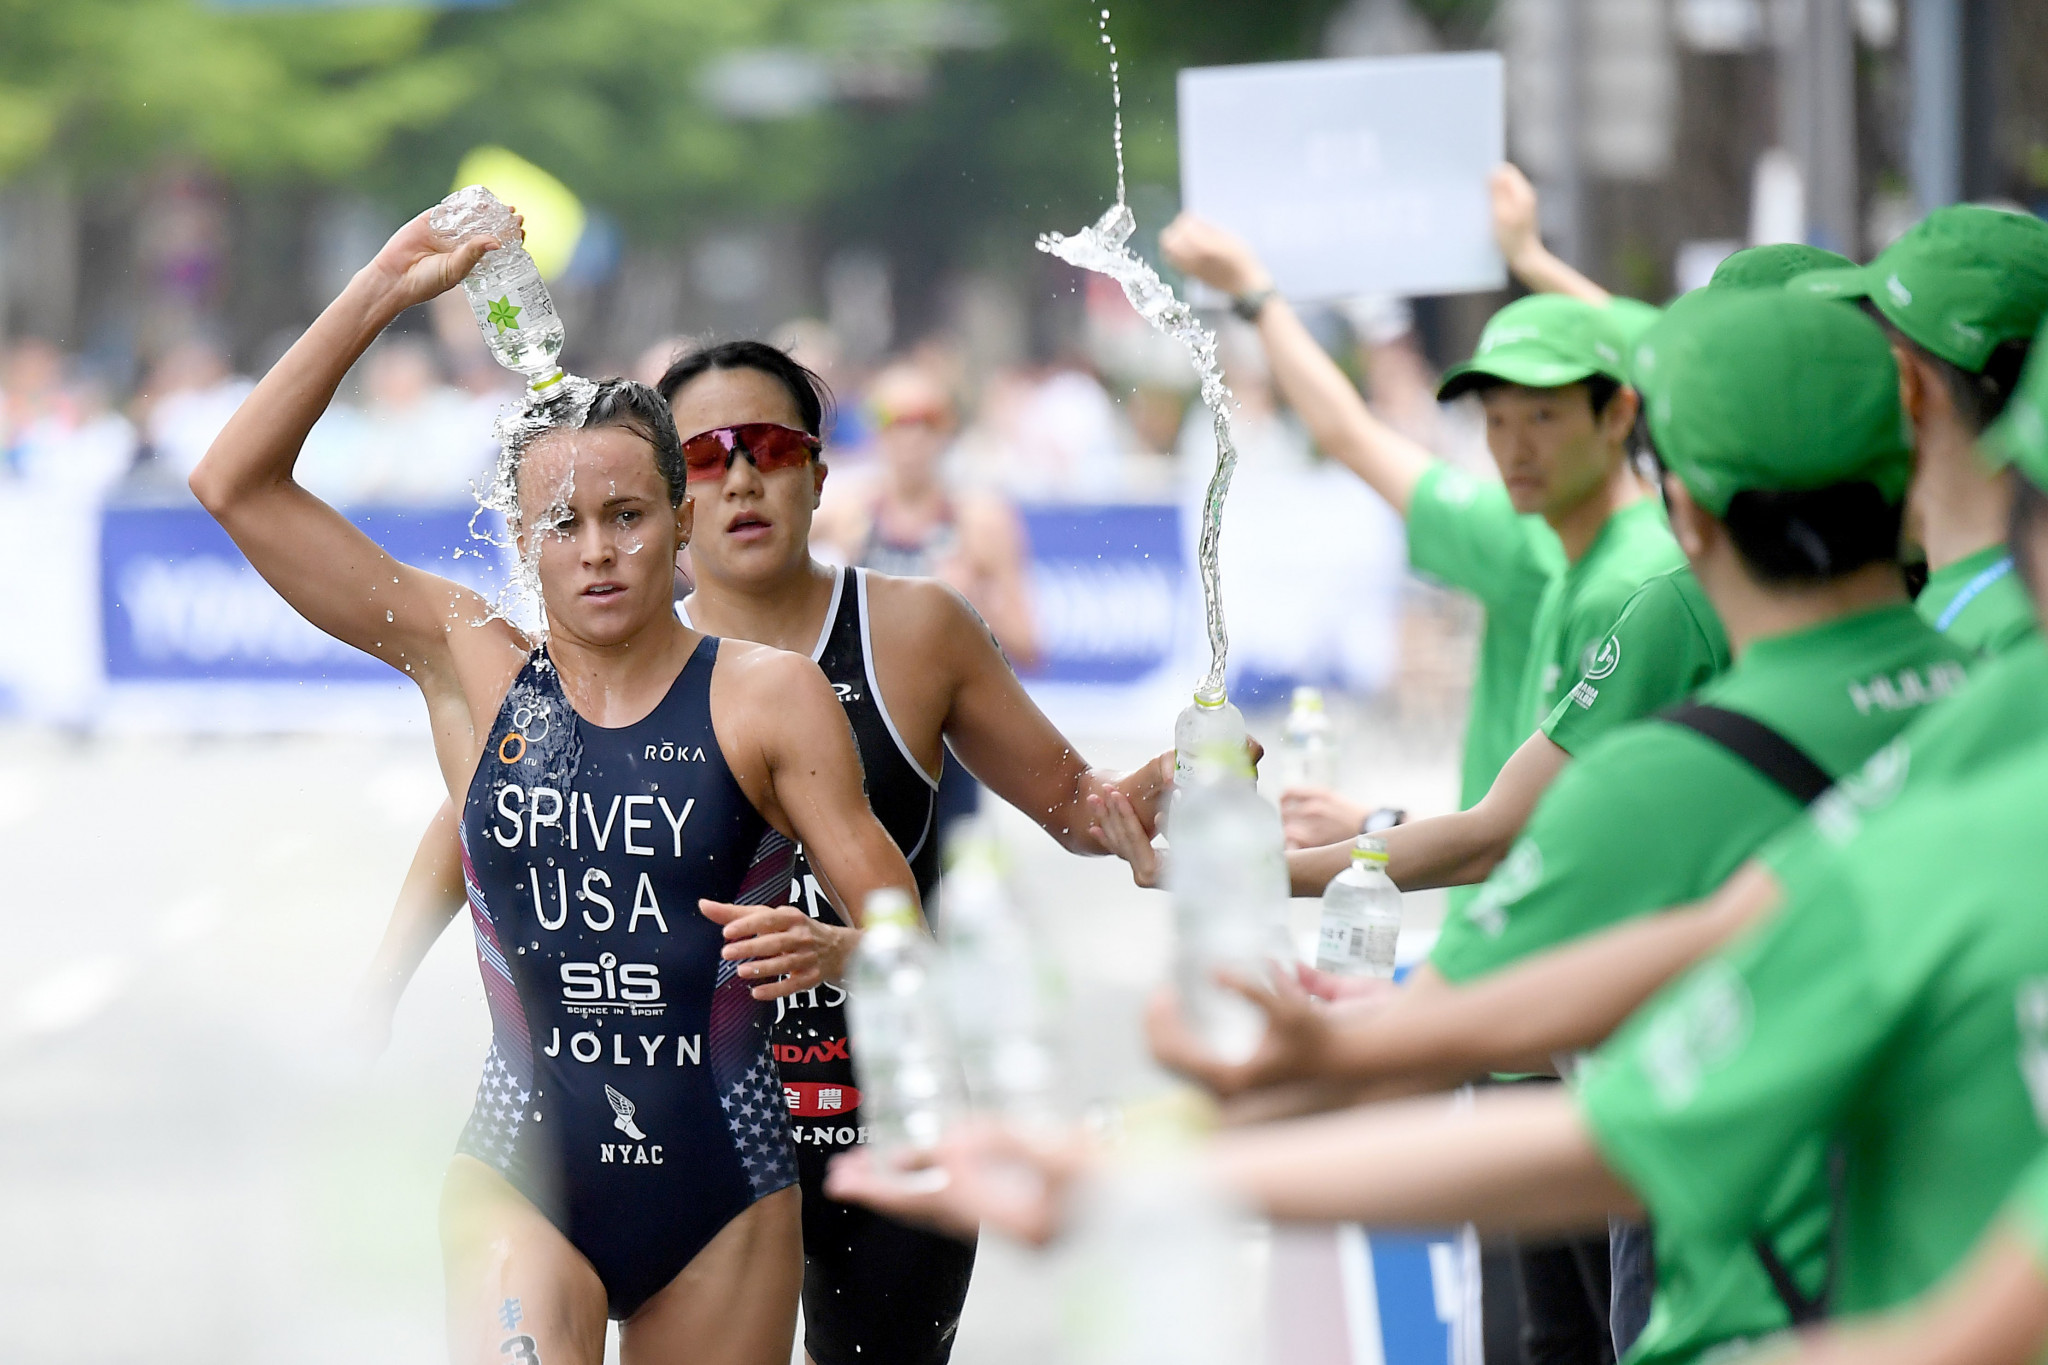 ITU and Tokyo 2020 to implement measures to tackle heat at World Olympic Qualification event